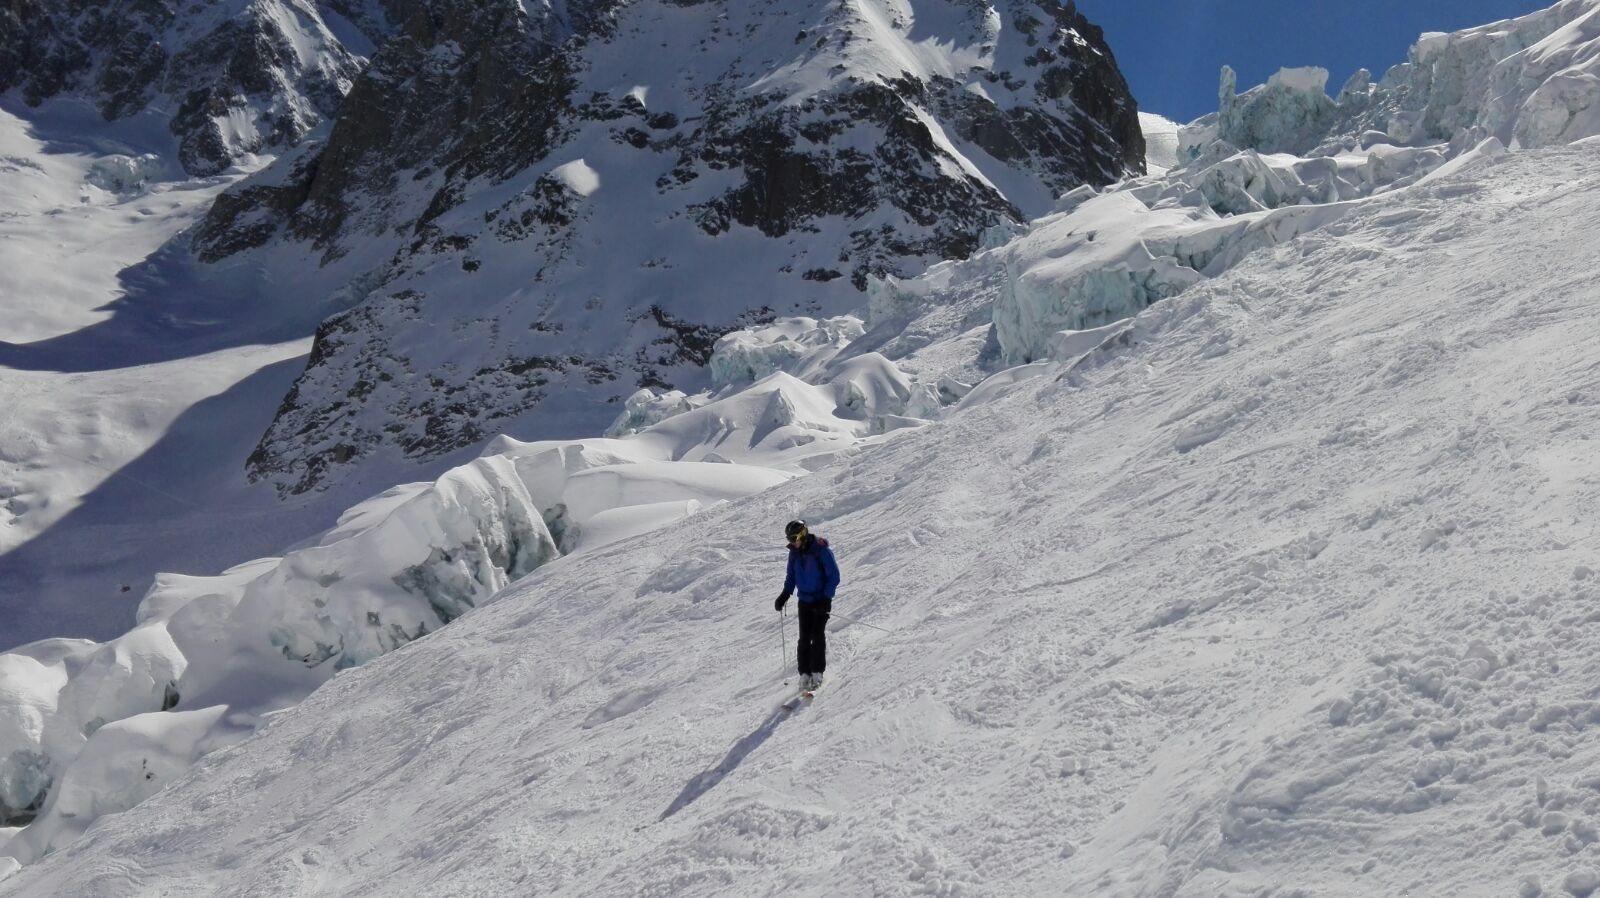 vallee blanche guide alpine proup (74)